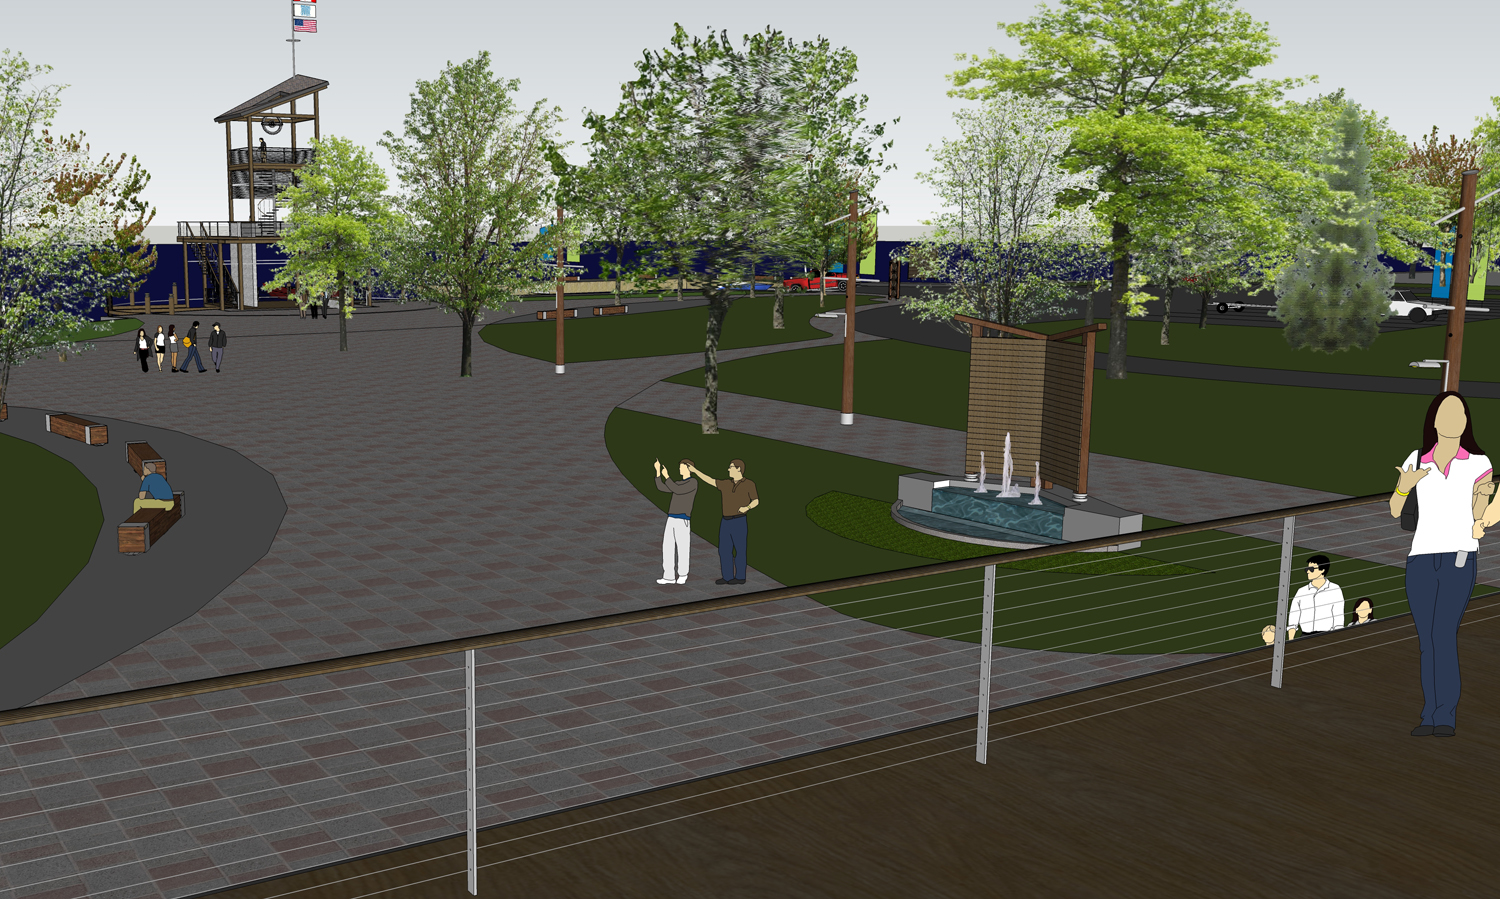 Morrisburg Waterfront Plaza - View from Roof Top Area at Welcome Centre Building